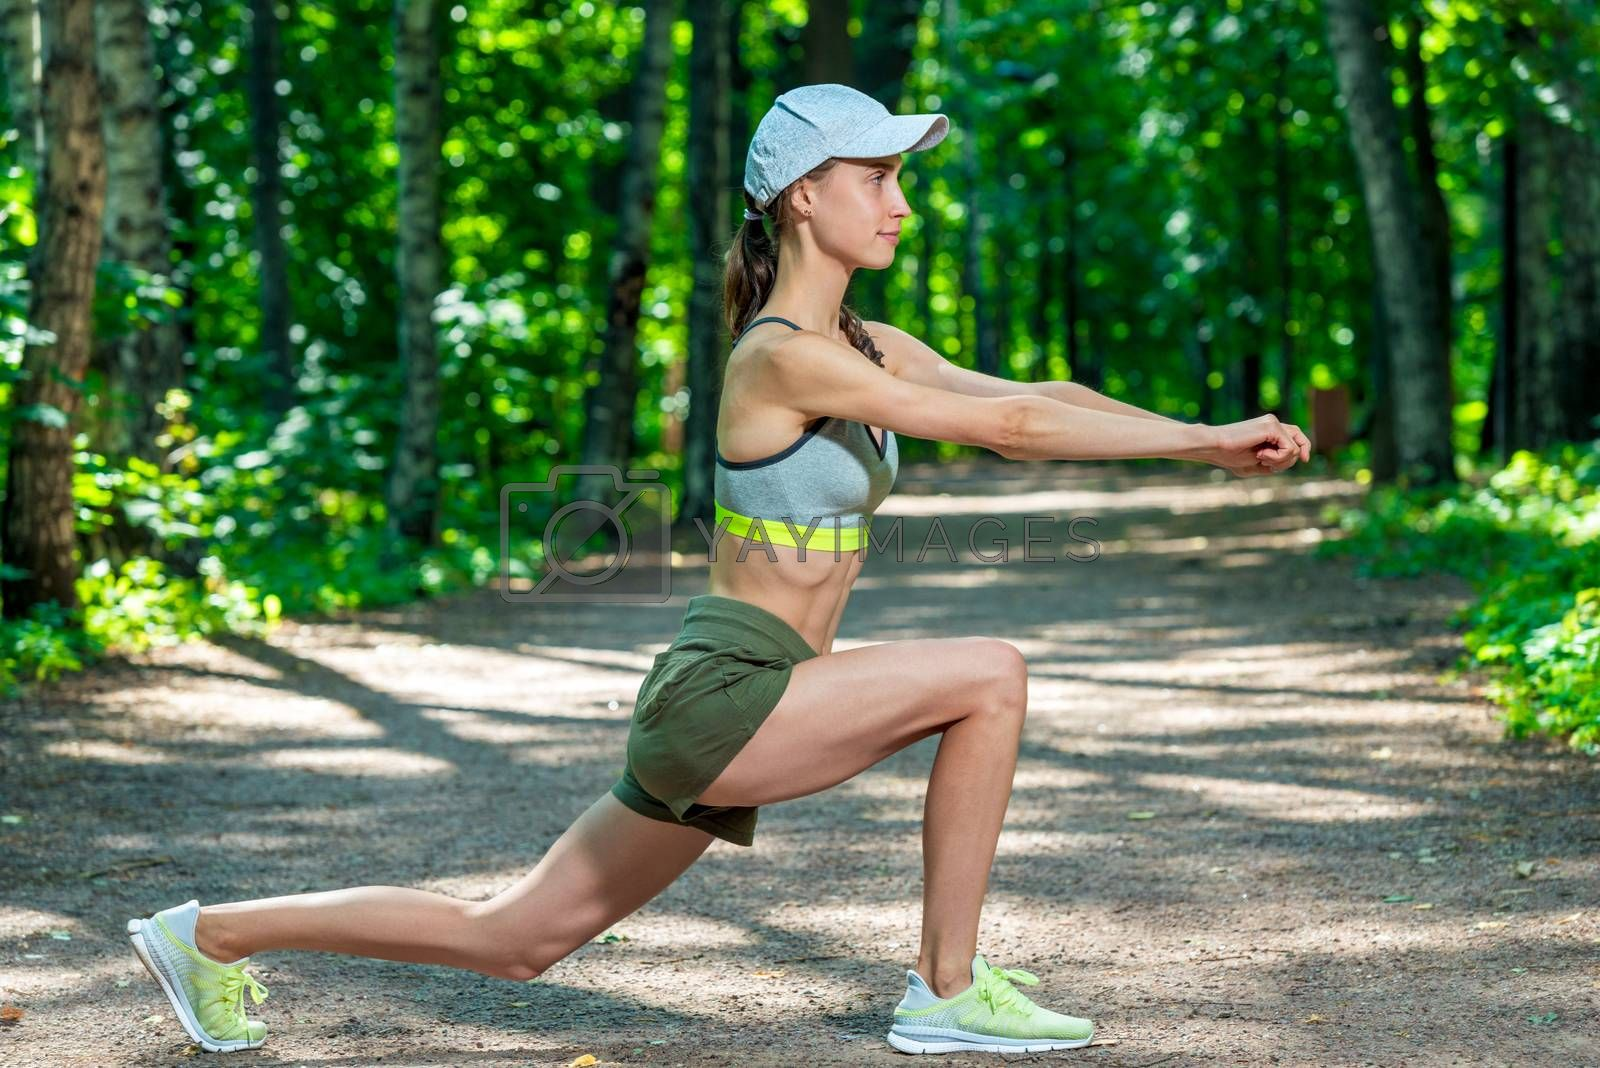 sporty woman performs stretching exercises in a summer park by Labunskiy K.